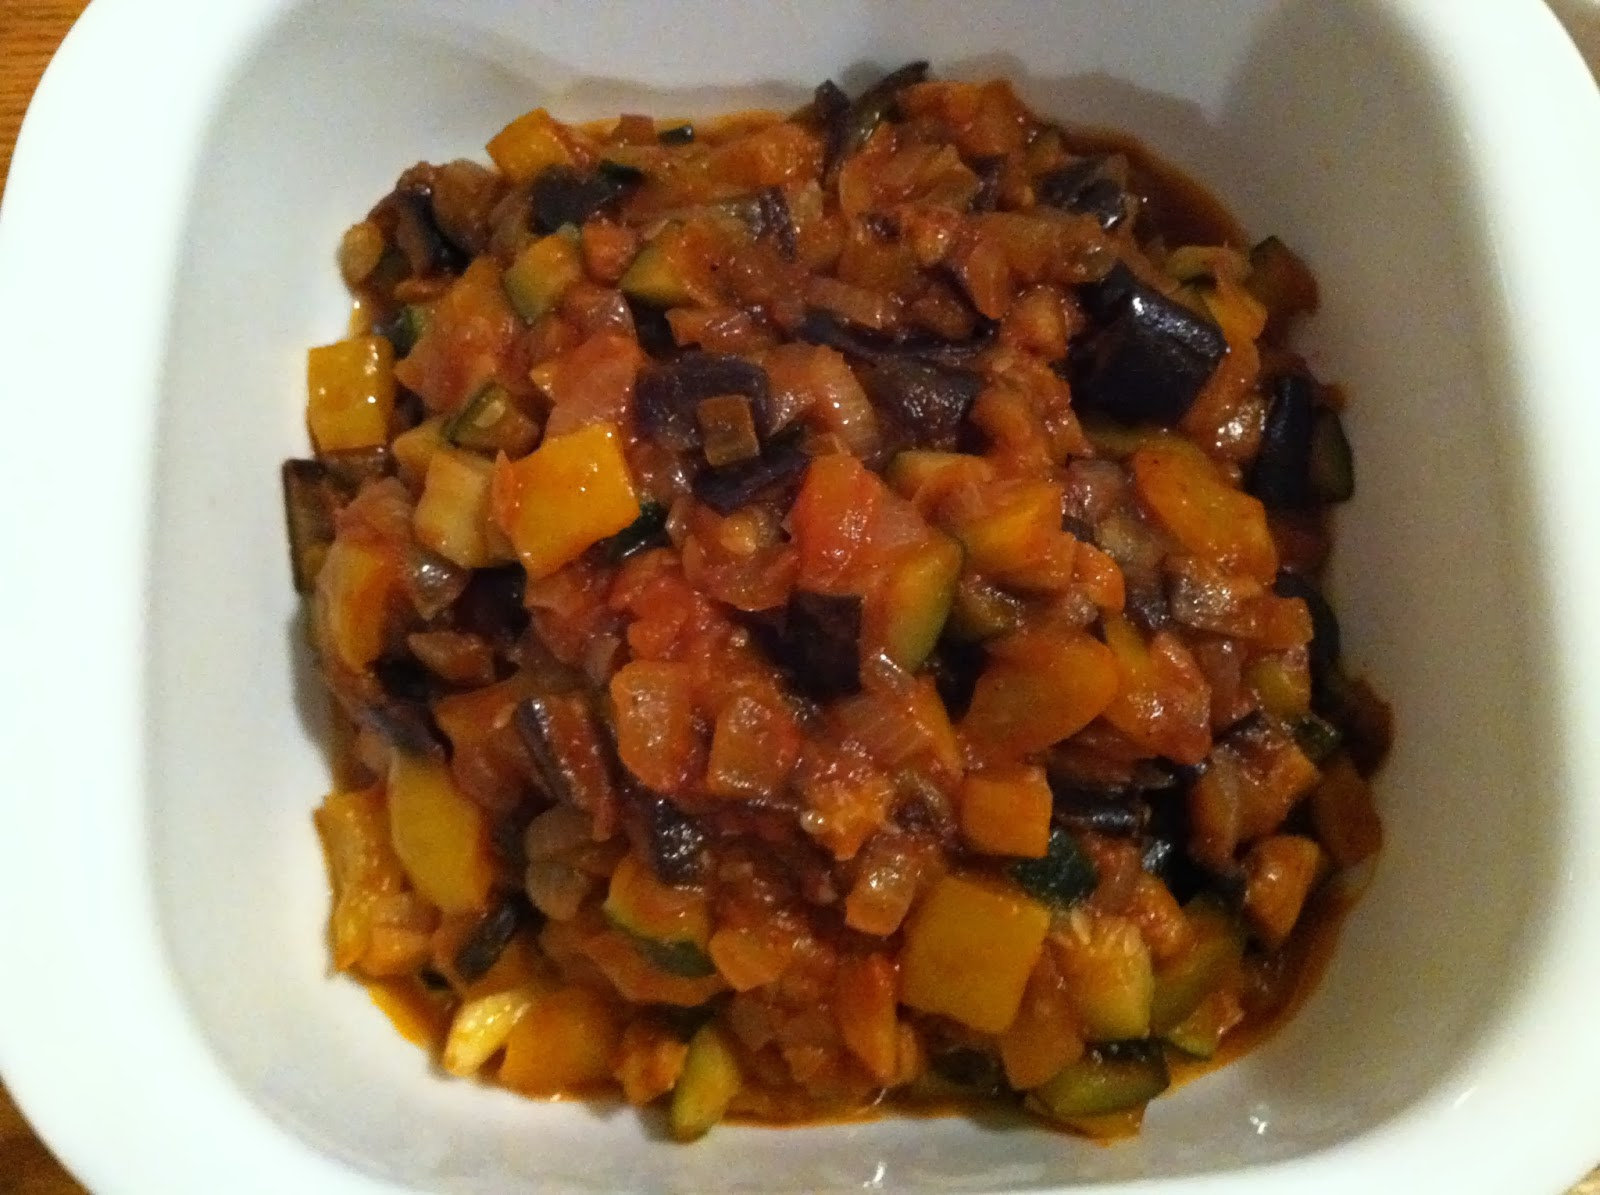 Beyond recipes a food and recipe blog classic ratatouille one of my favorite dishes has got to be ratatouille its nutritious and delicious i usually serve it as a side dish to accompany a meal think steak forumfinder Choice Image